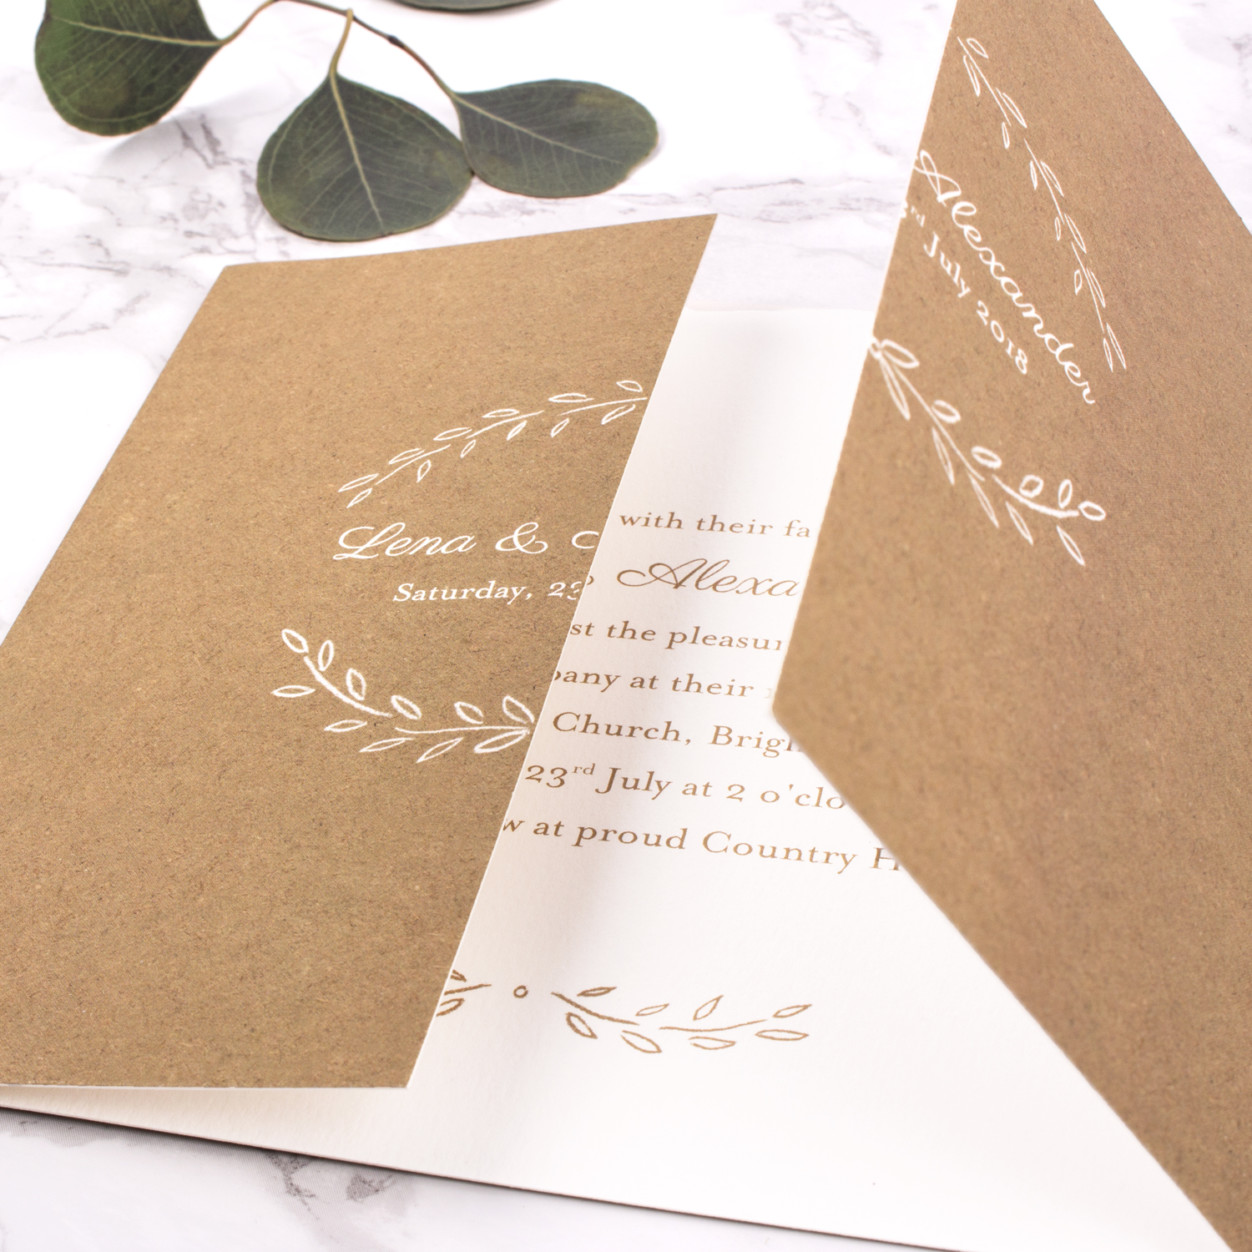 Poem Gatefold Wedding invitations